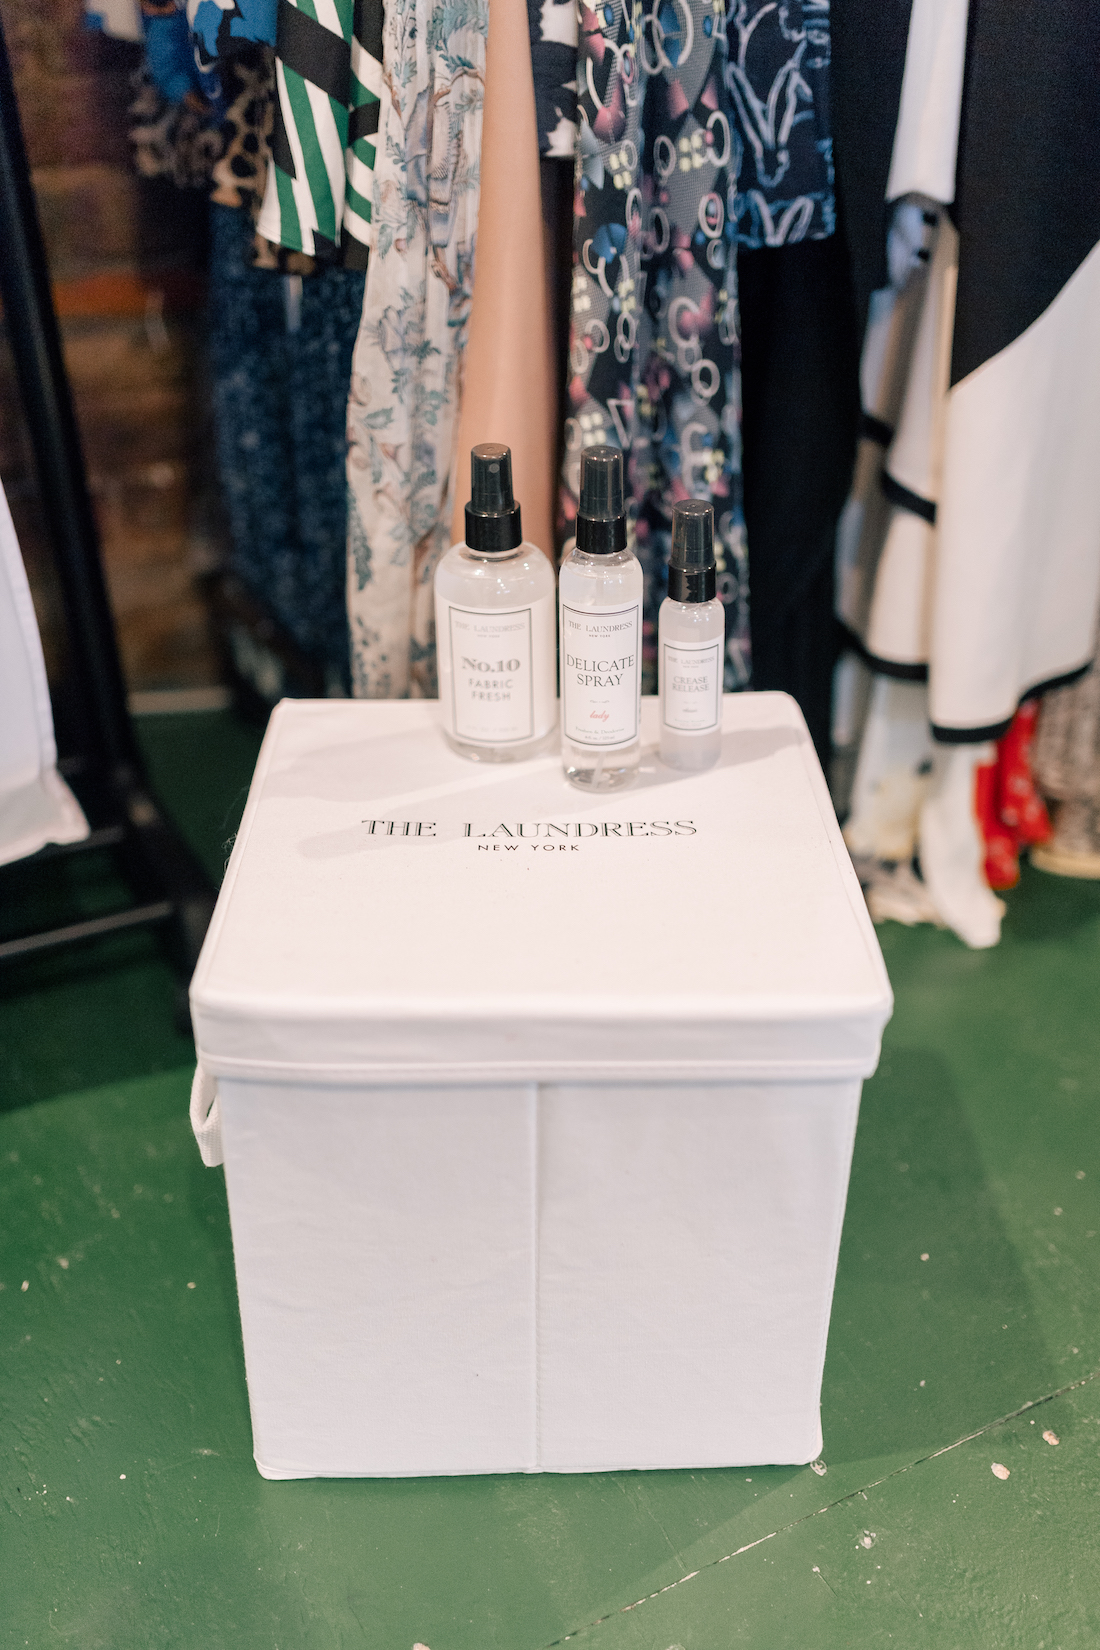 Closet Makeover with The Laundress